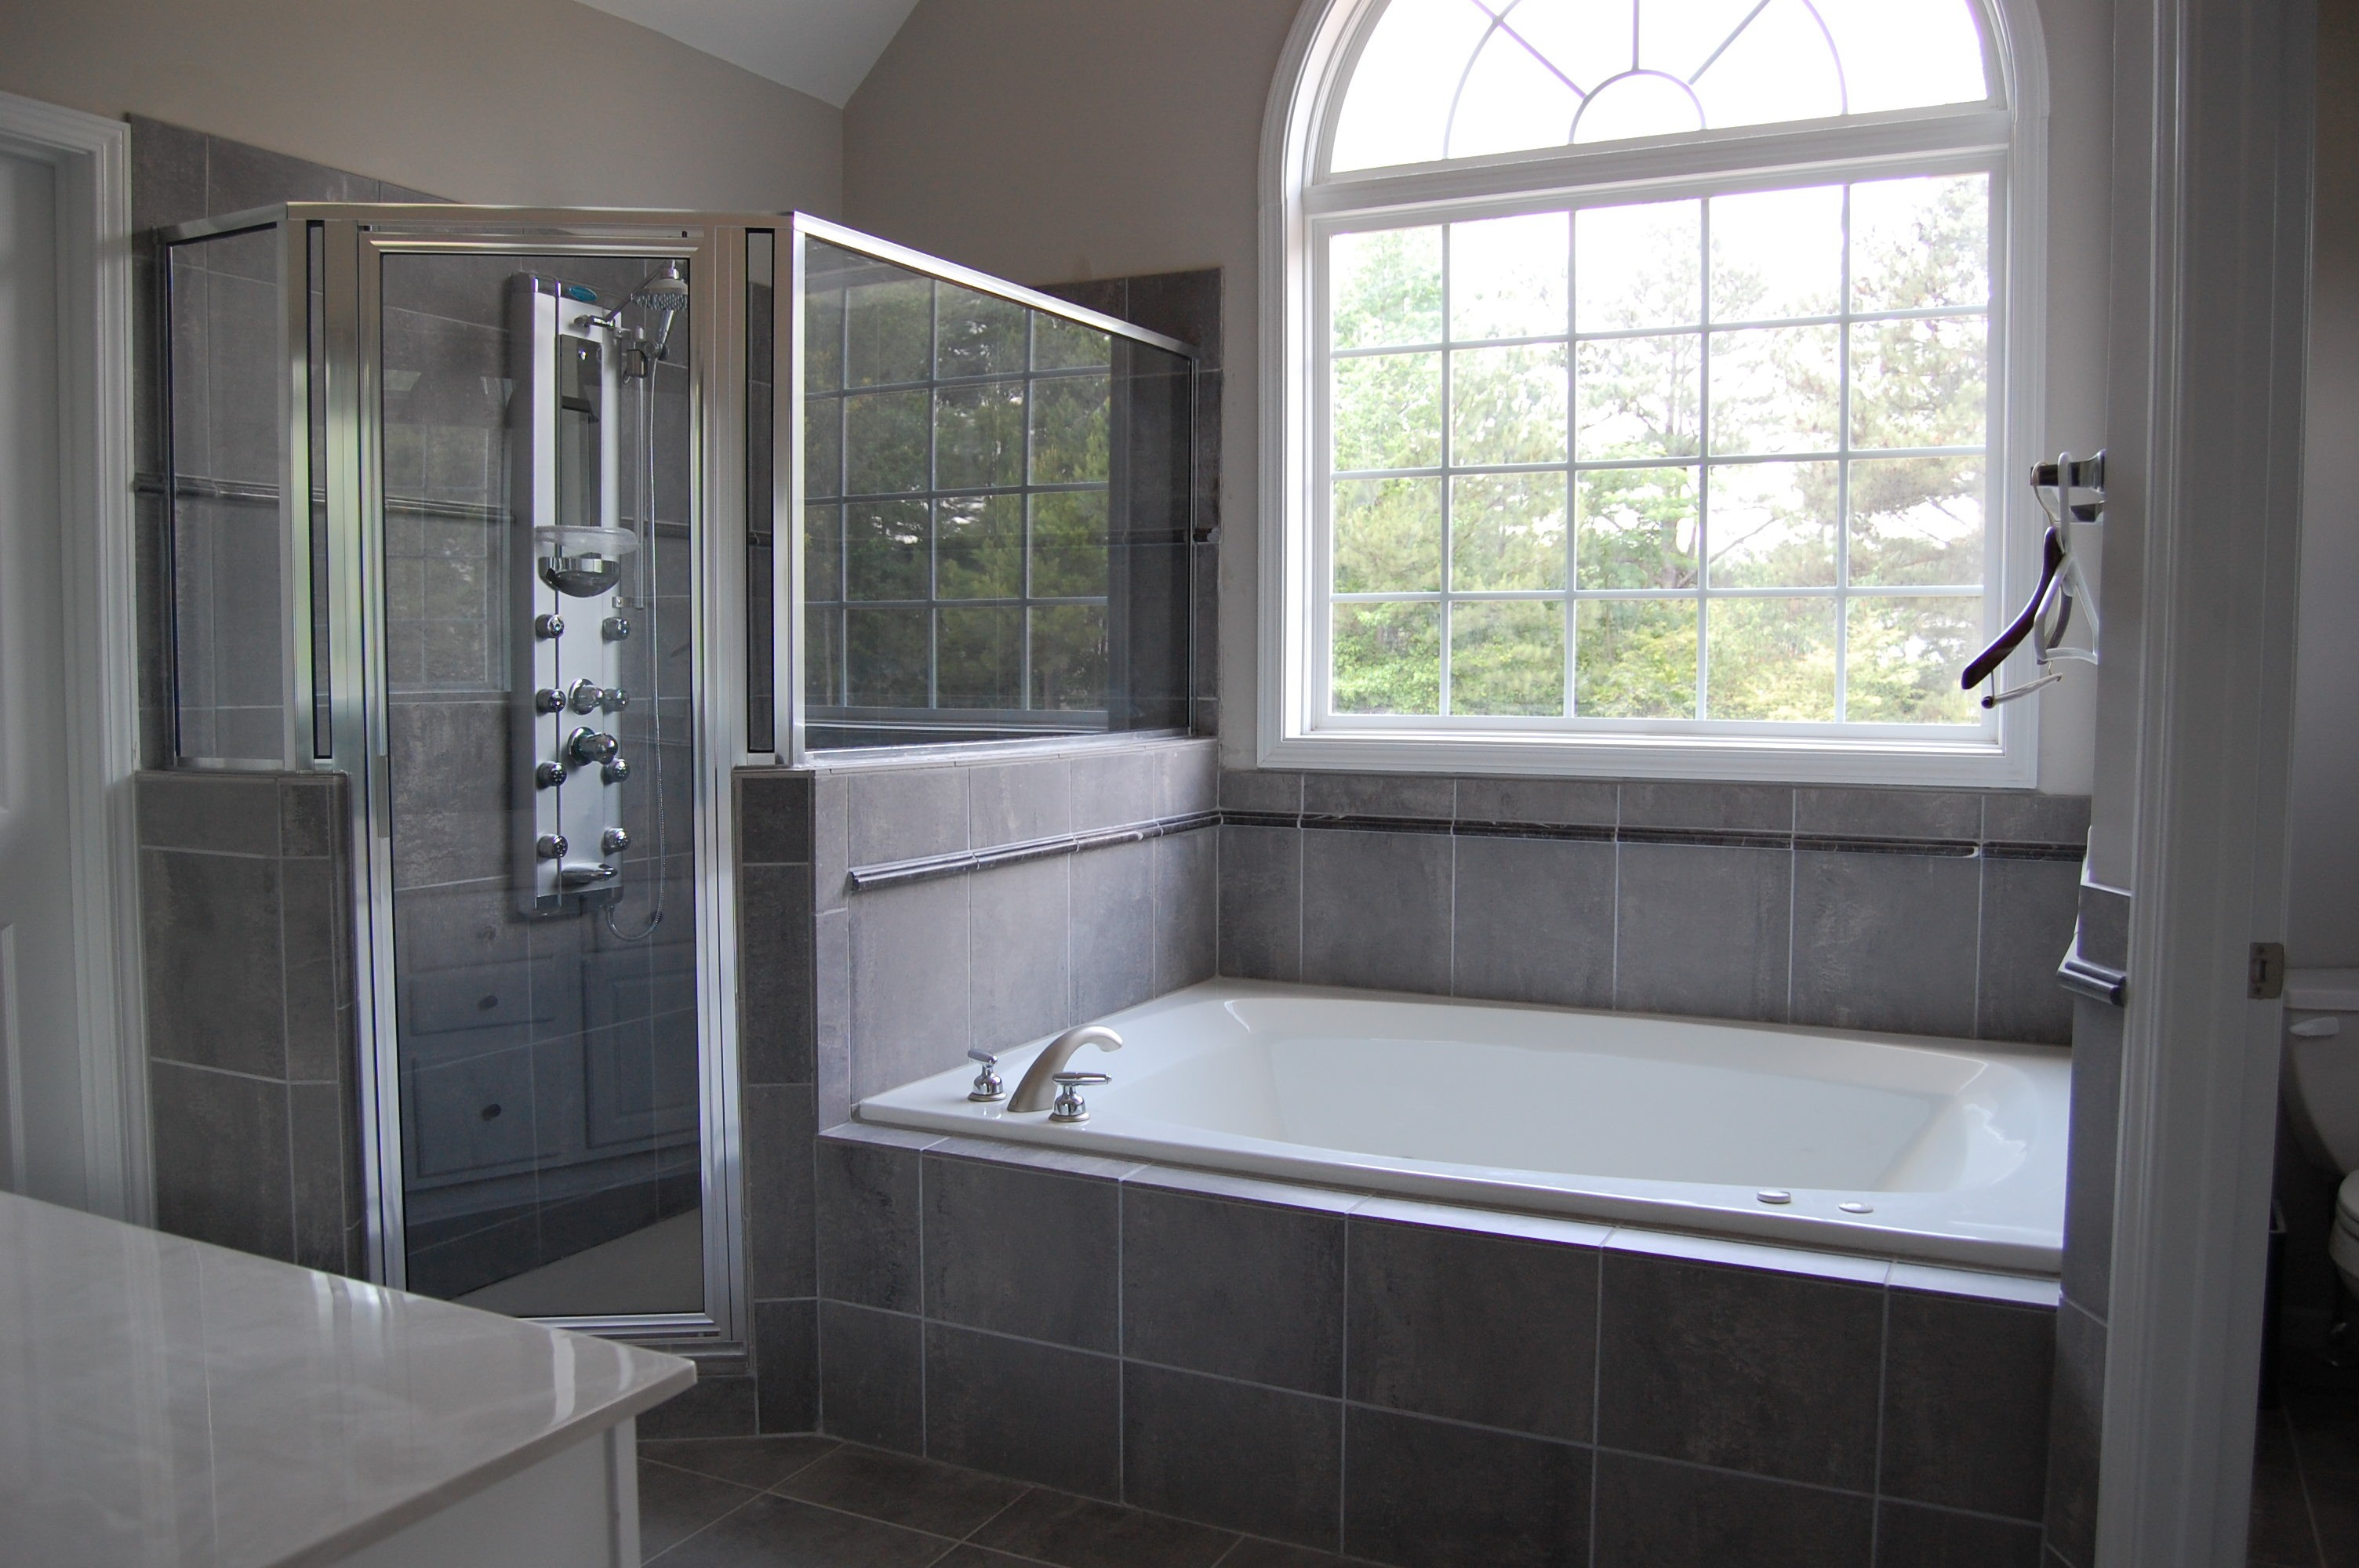 Lovely Home Depot Bathroom Remodel Decoration Large Bathtub Shower Combo 1287449 Hd Wallpaper Backgrounds Download